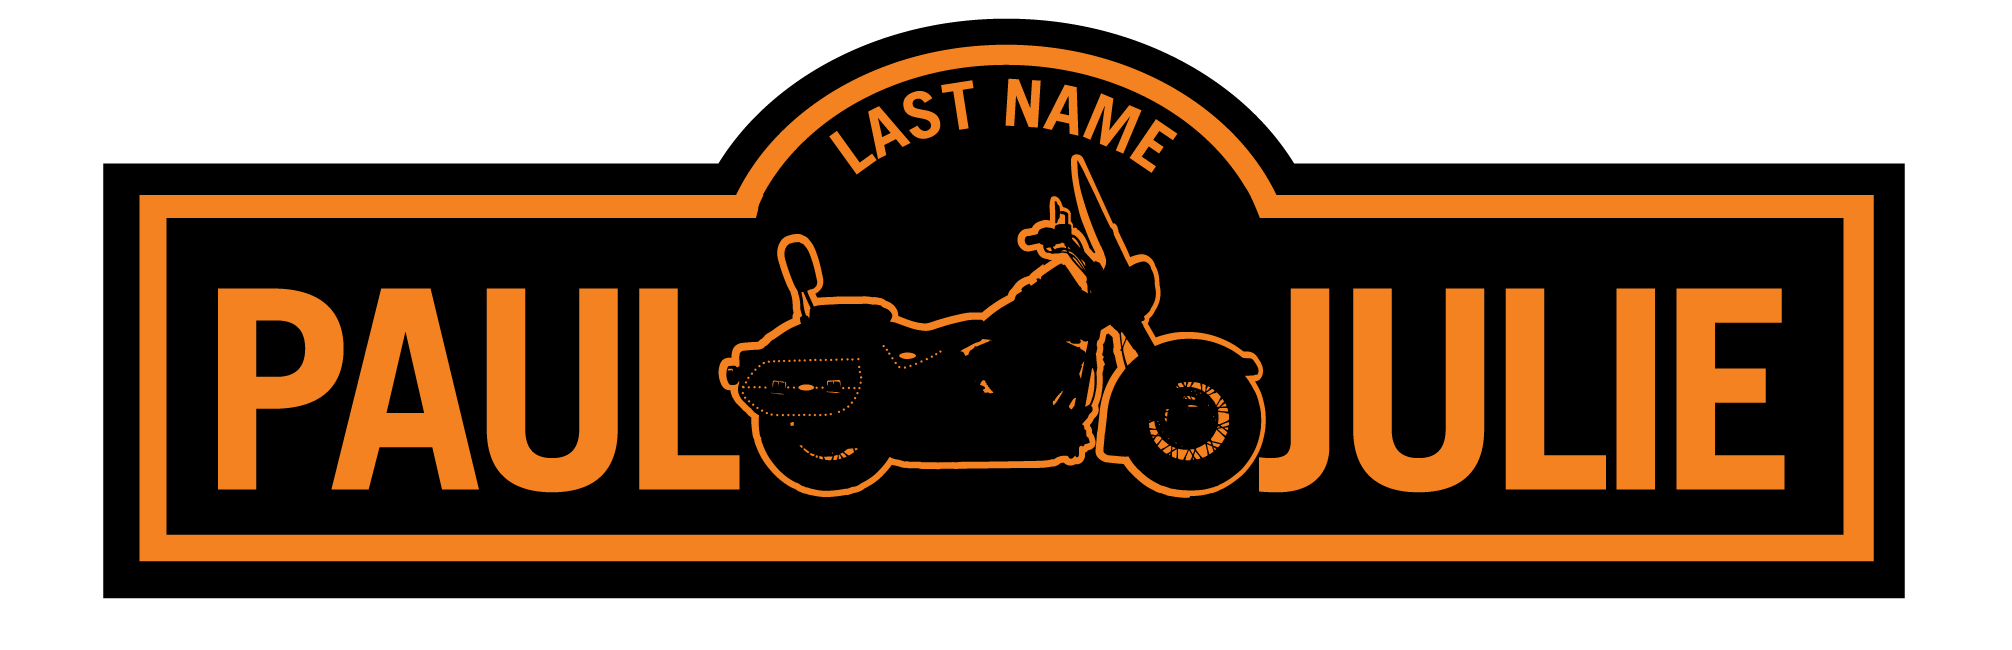 Long clip name. Names personalized motorcycle signs